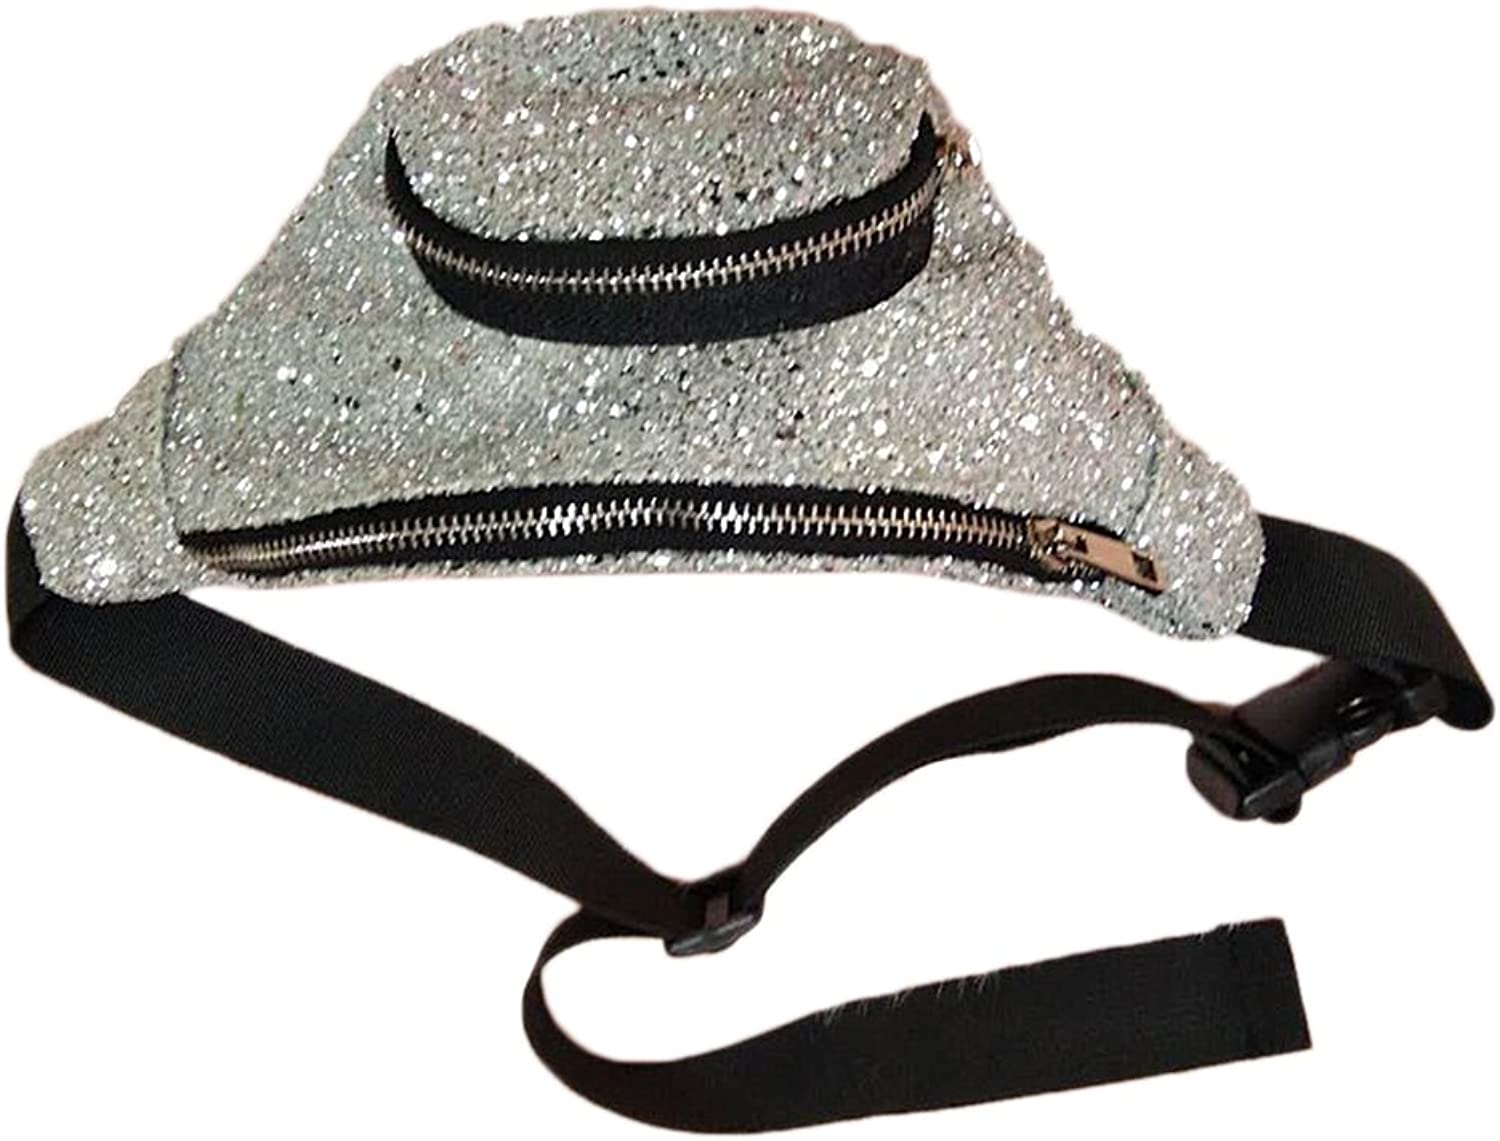 OULII Cool Sequin Waist Pack Leisure Casual Glitter Fanny Pack AllMatch Sports Bag (Silver)